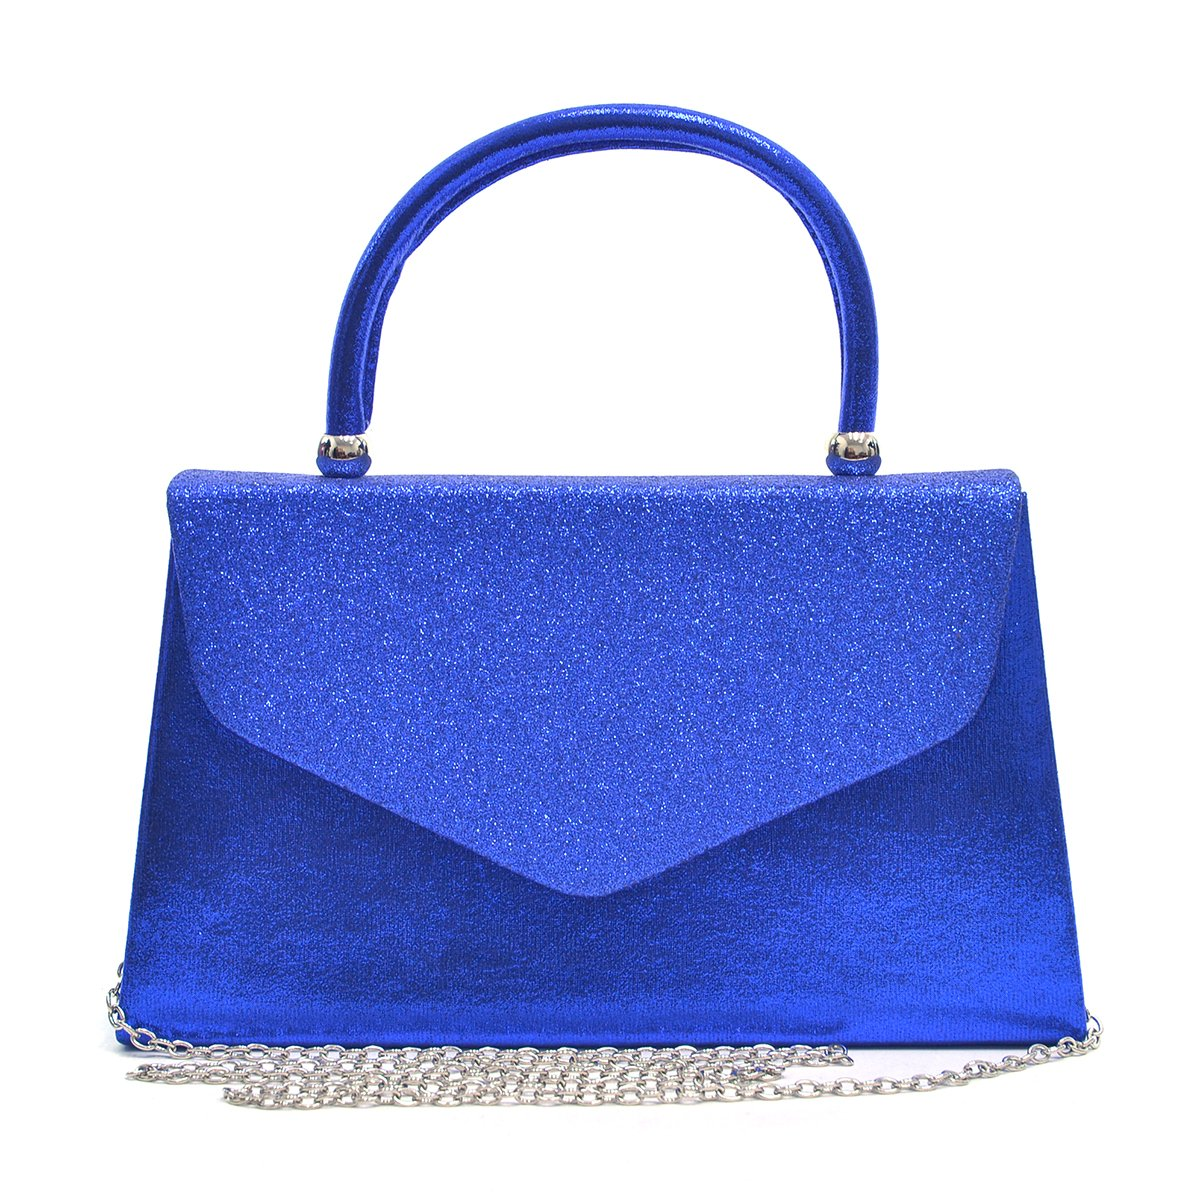 Dasein Women's Evening Bags Formal Party Clutches Wedding Purses Cocktail Prom Handbags with Frosted Glittering (Royal Blue) by Dasein